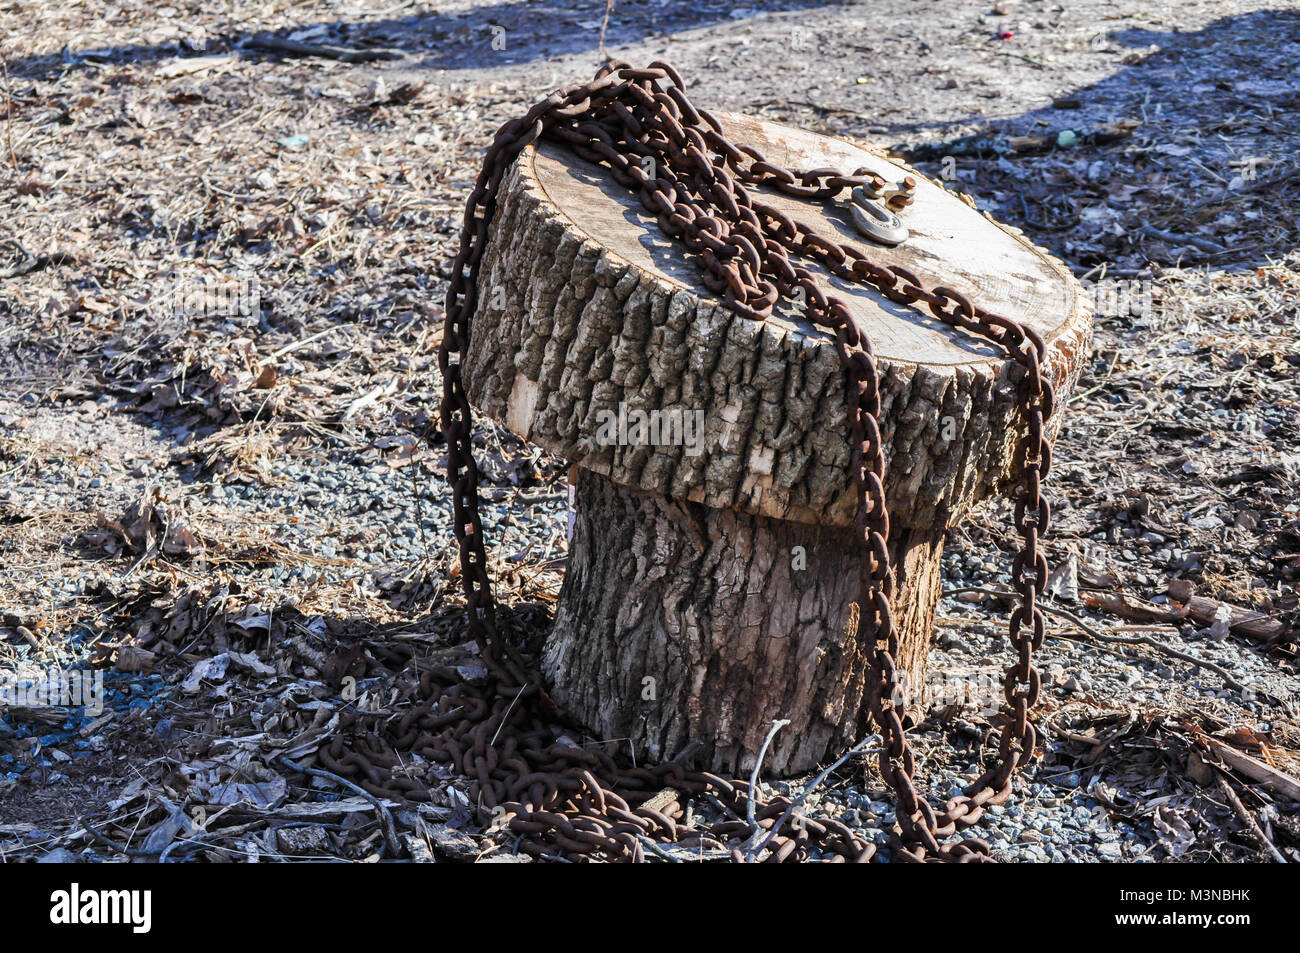 Rusted Heavy Chain On A Tree Stump Chair In The Woods   Stock Image